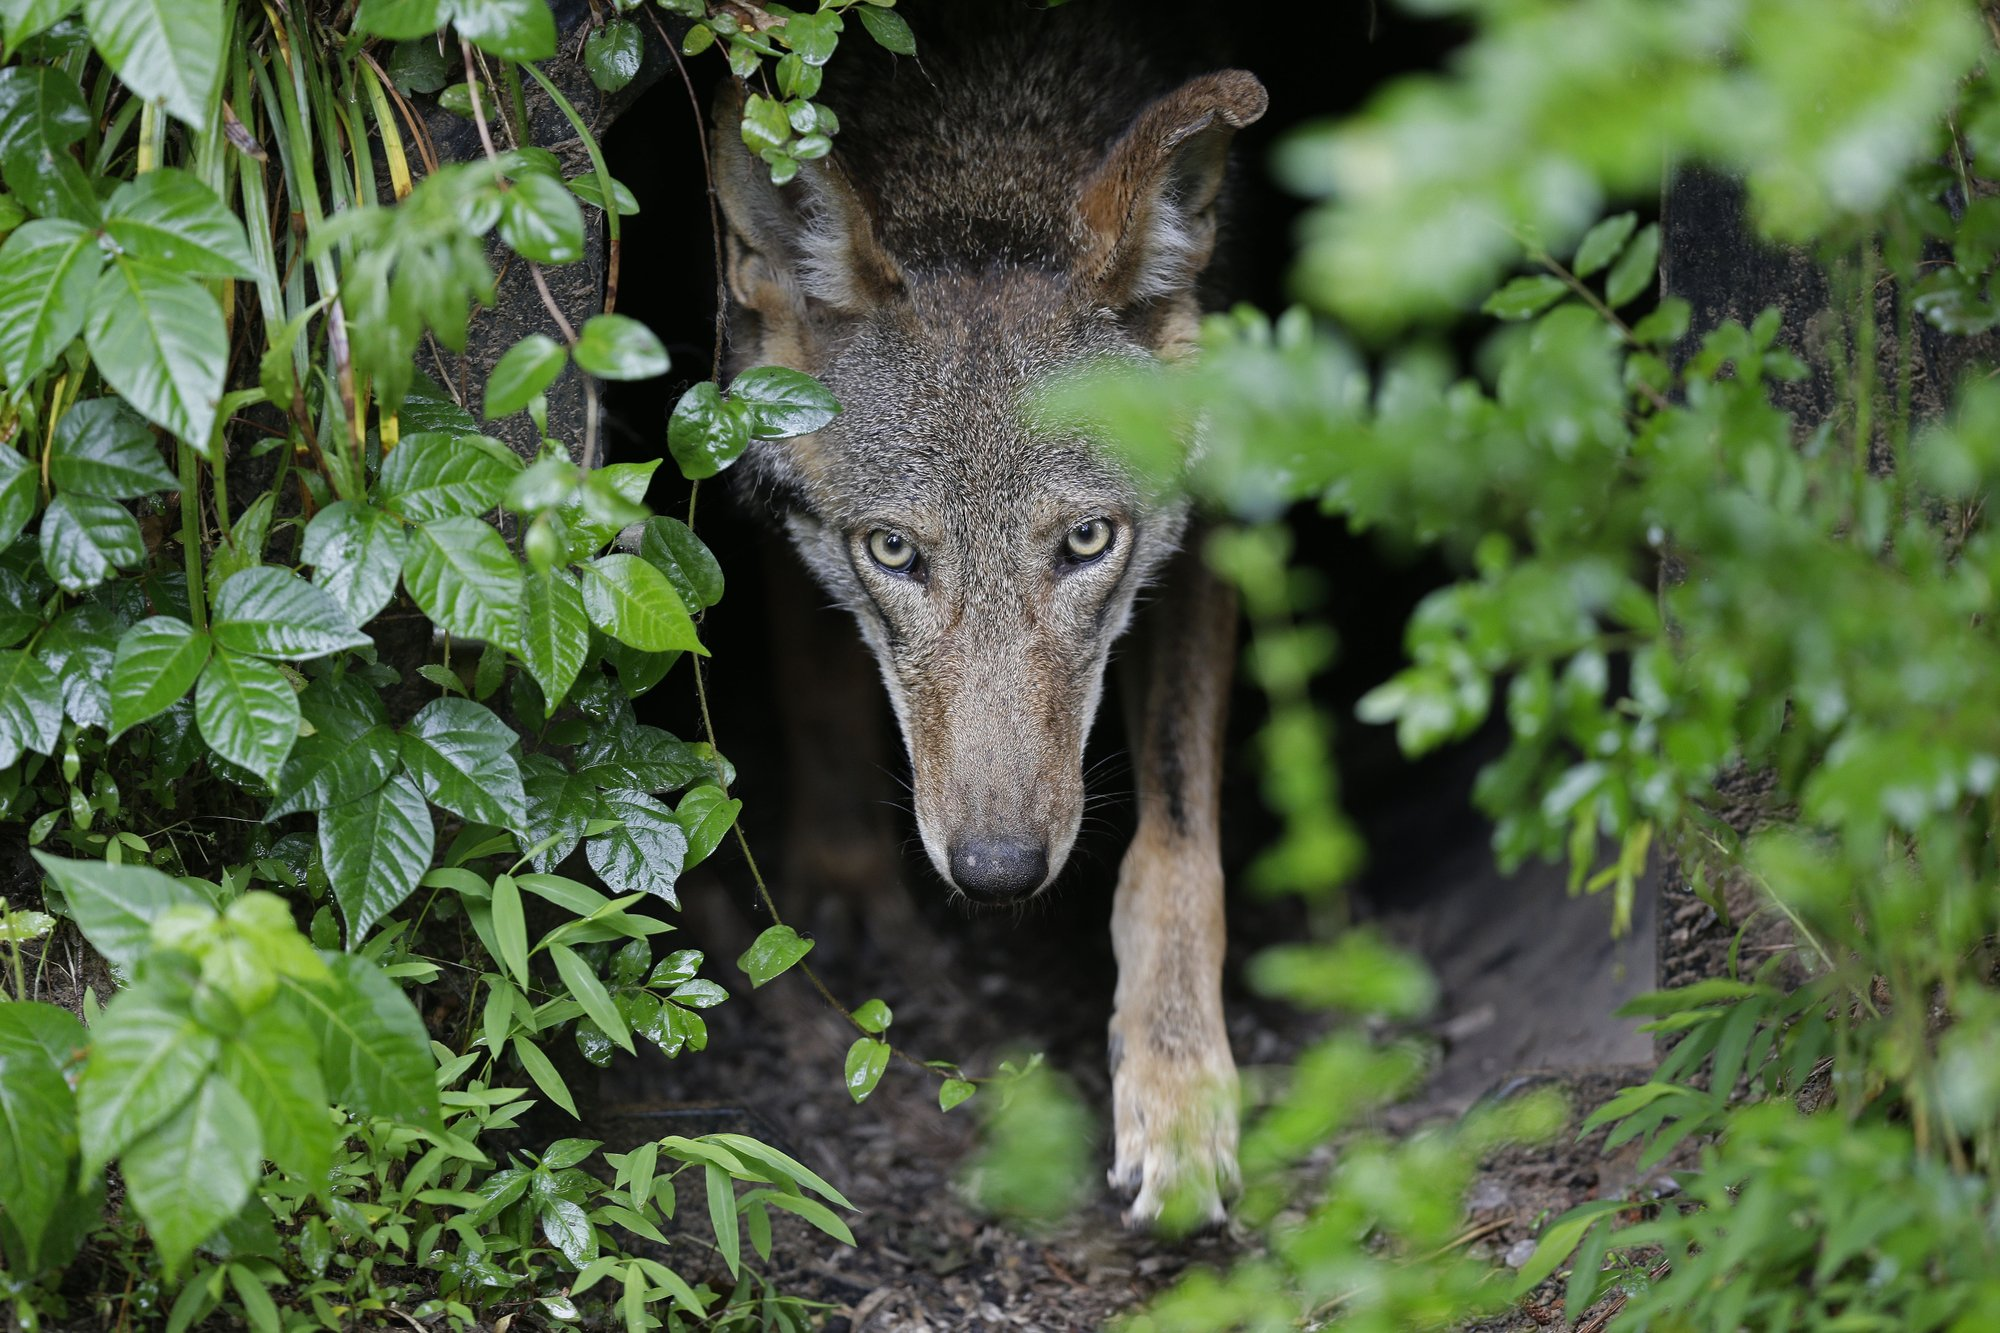 Illegal killings, political opposition hobble wolf recovery